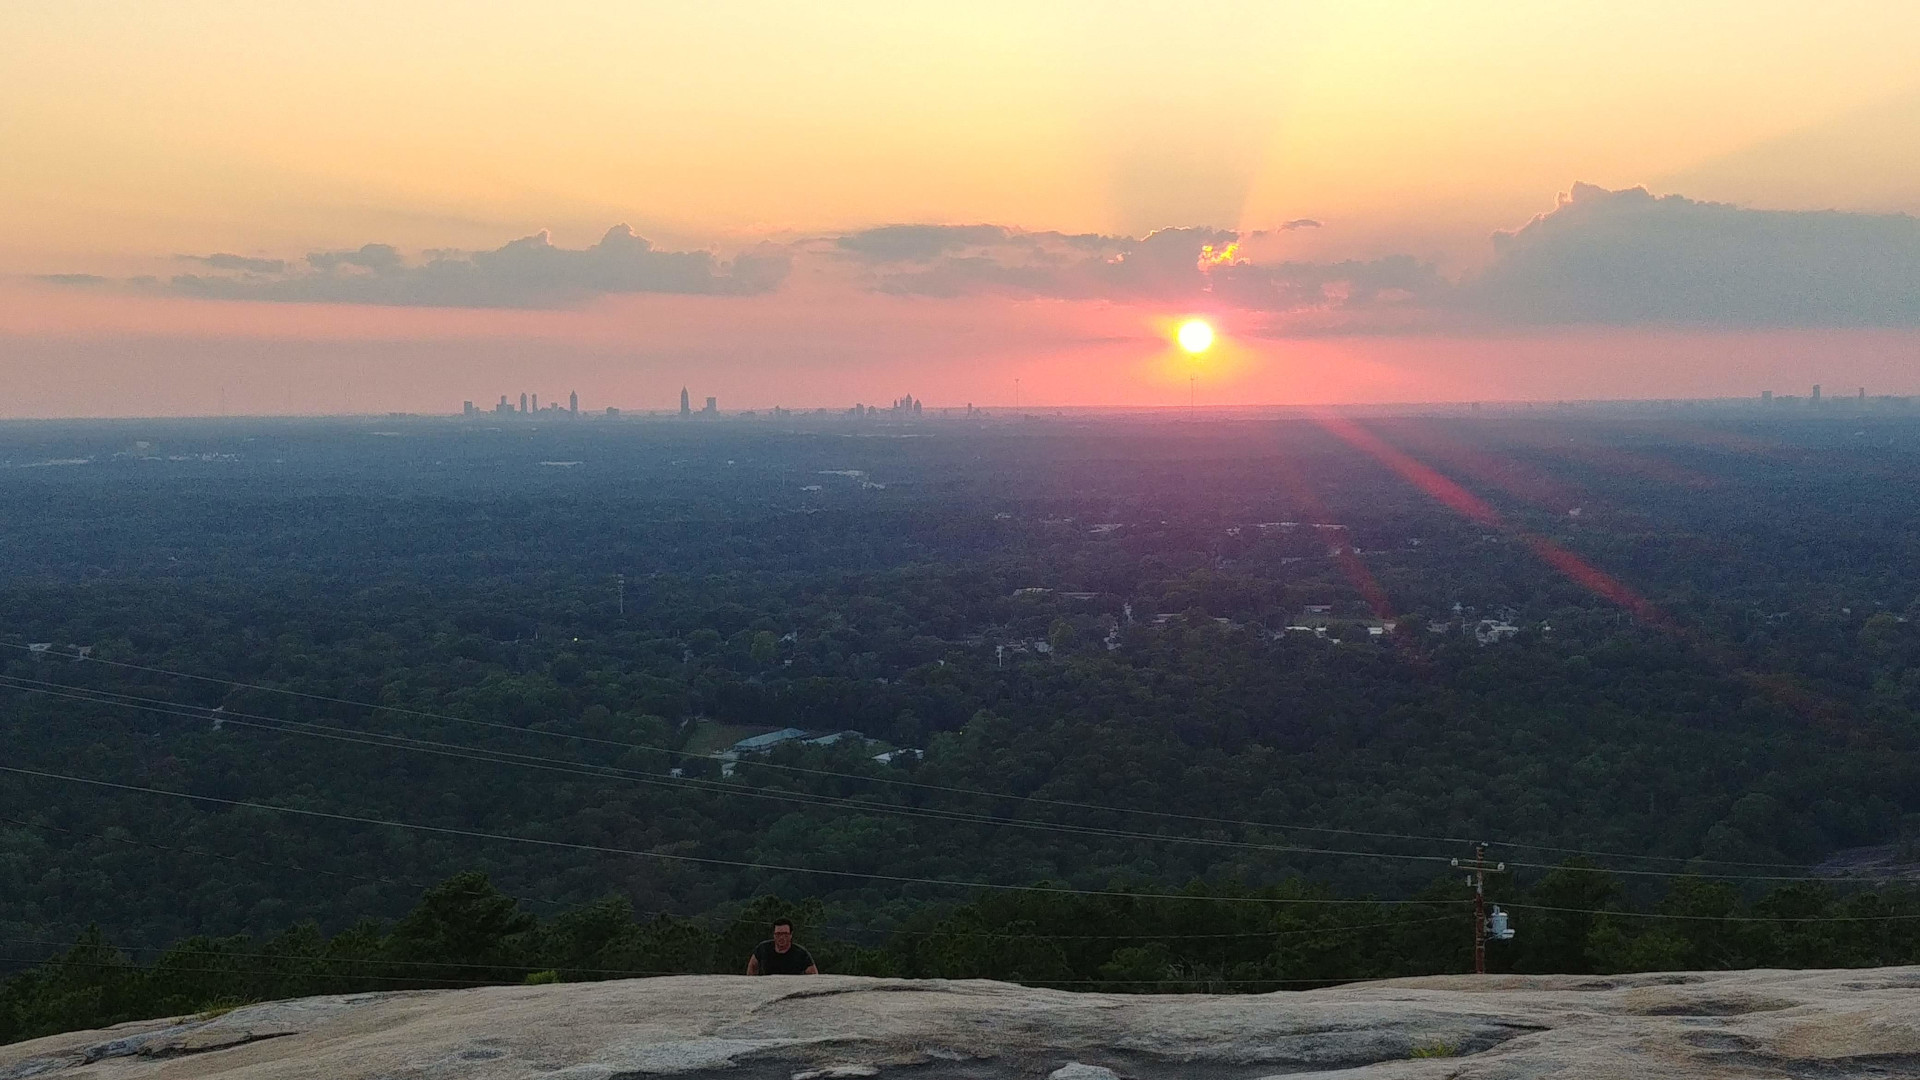 Amazing Sunsets on Stone mountain provides a great scenery